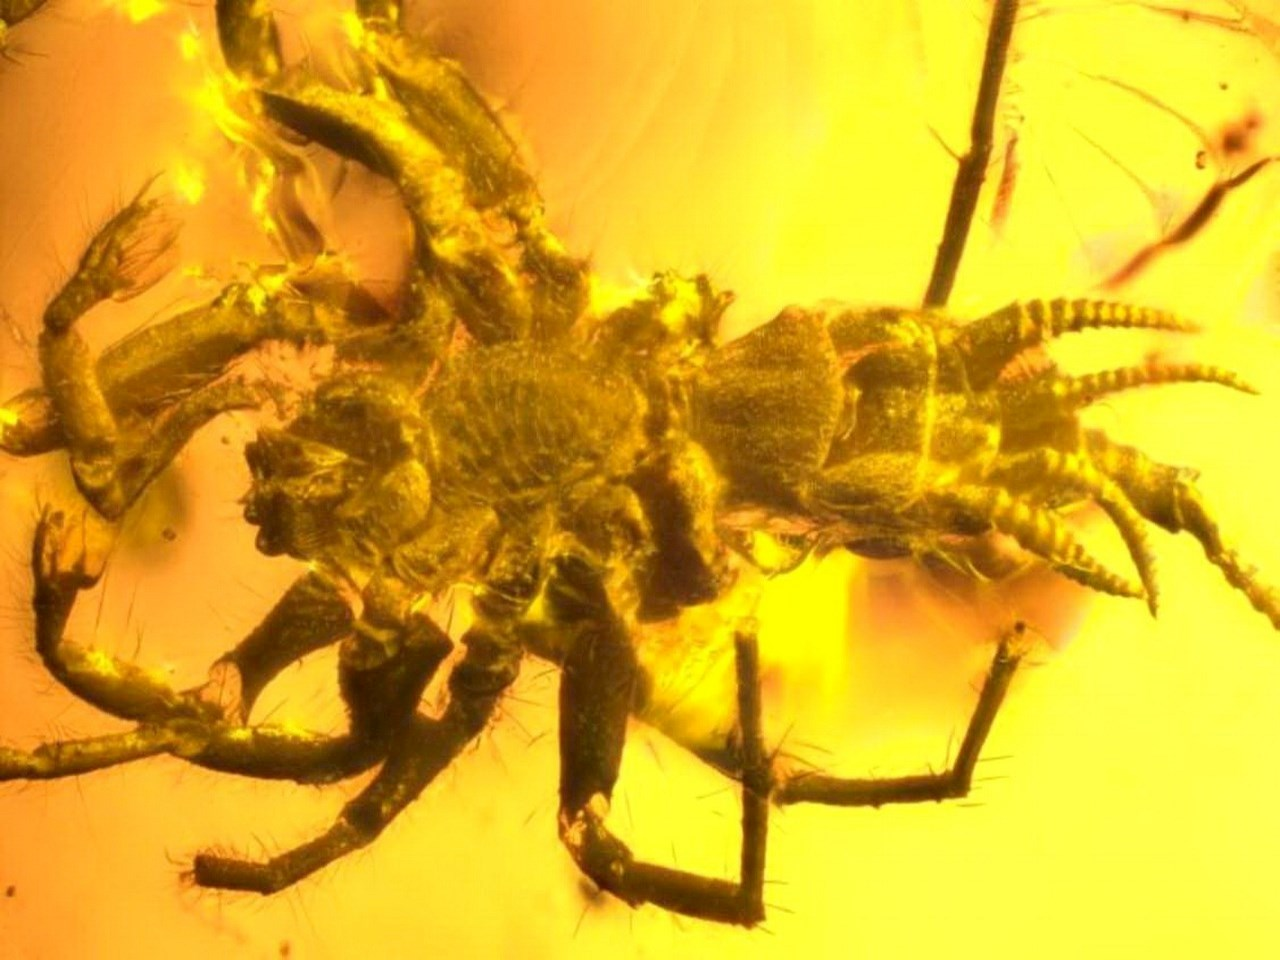 Amber preserved in exquisite detail these 100-million-year-old close relatives to spiders